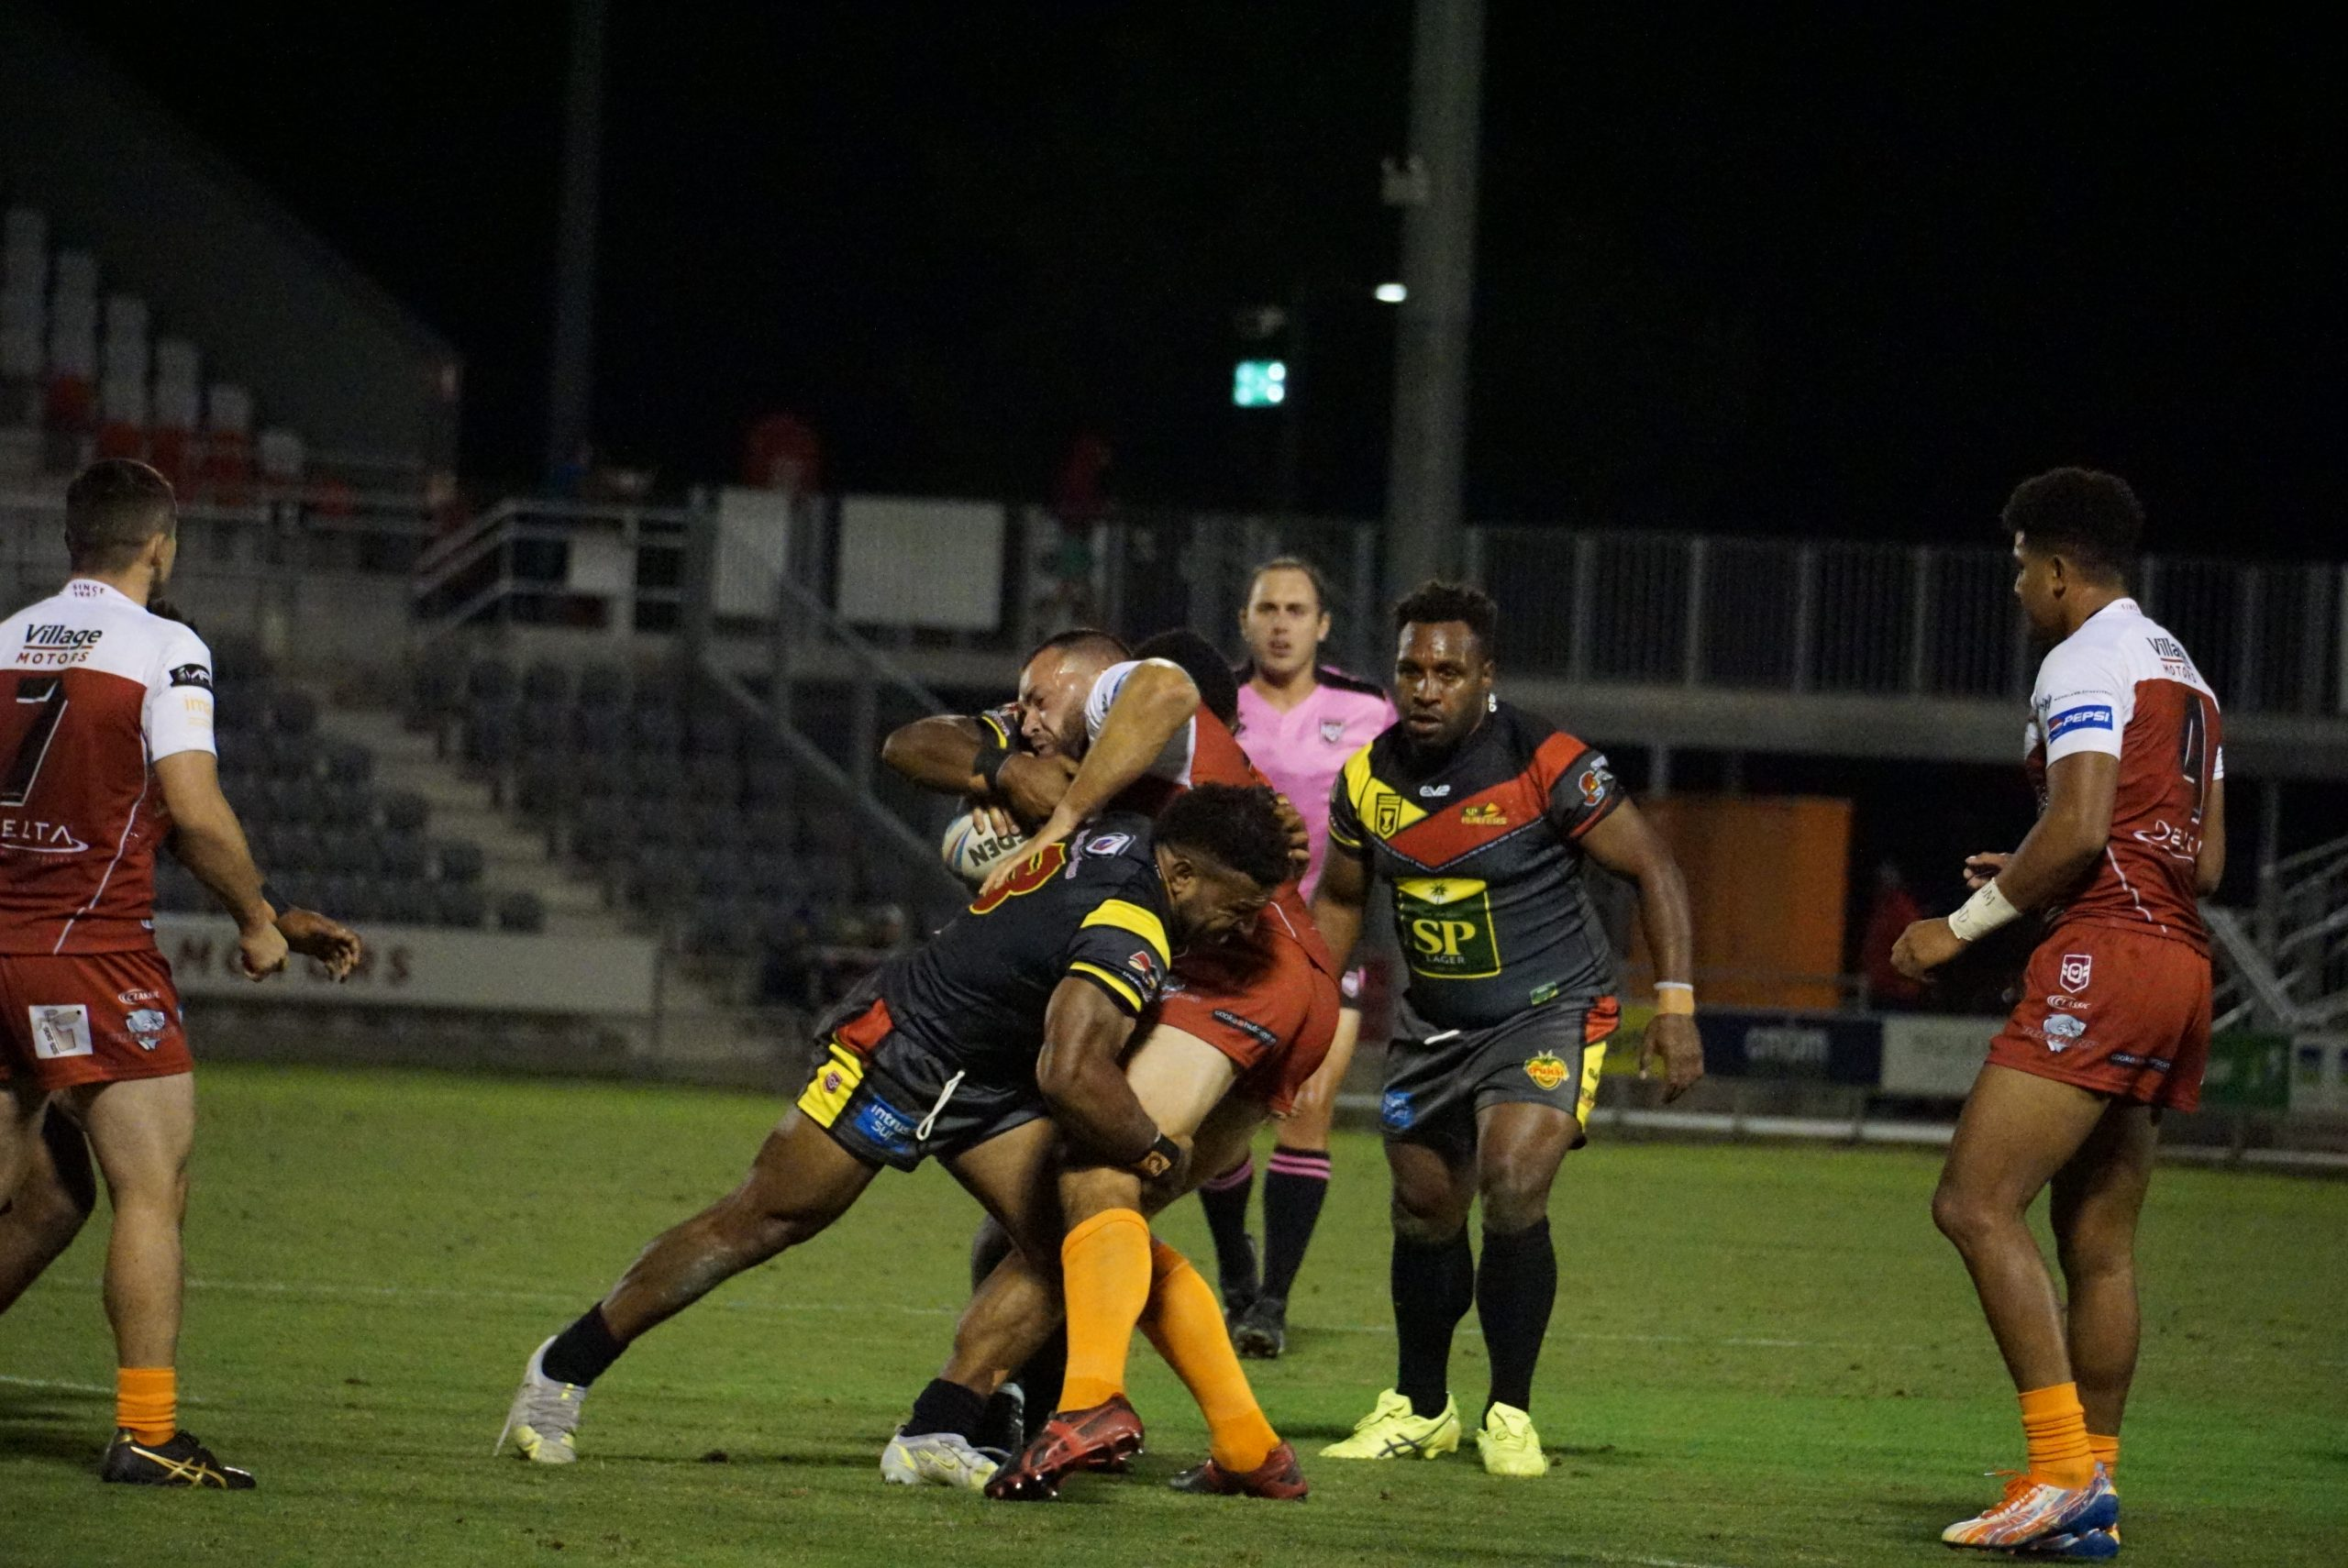 Hunters rally late against Dolphins